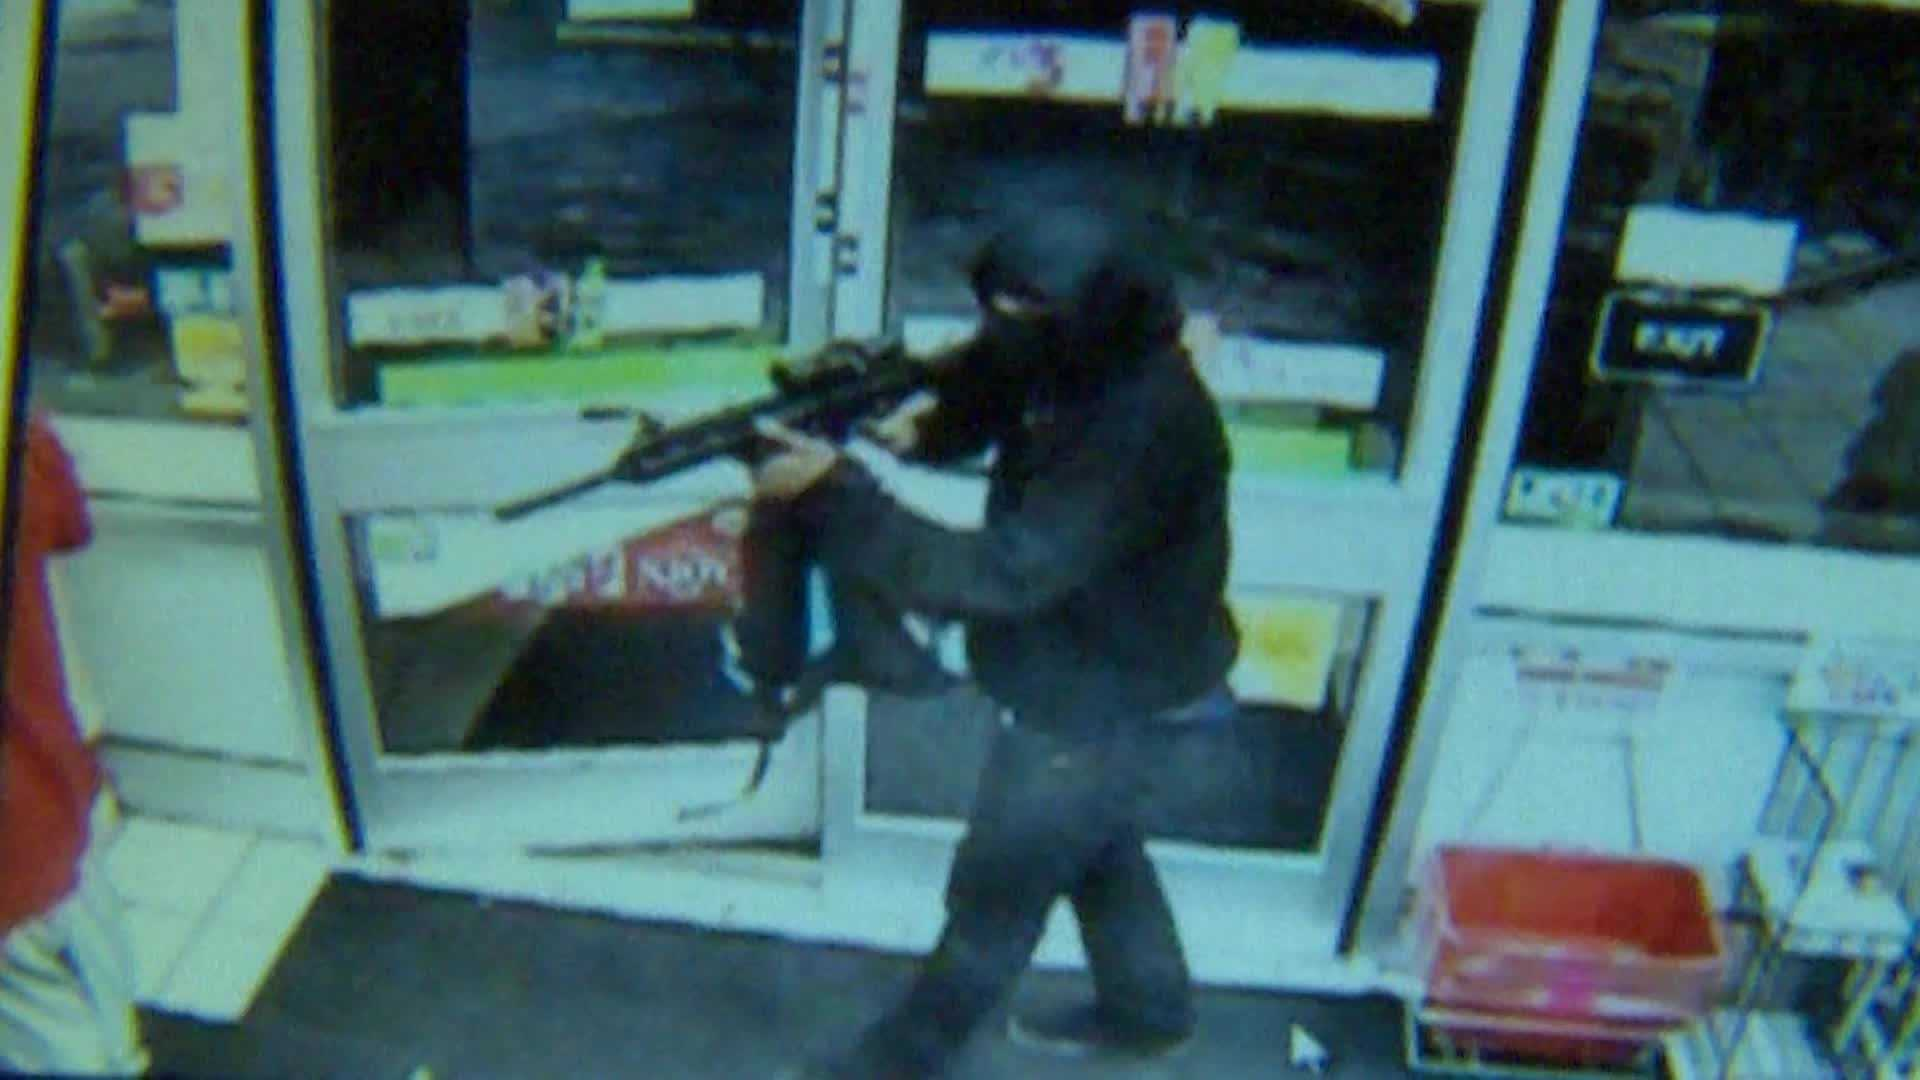 The 7-Eleven convenience store on James Street was the target of an armed robbery.